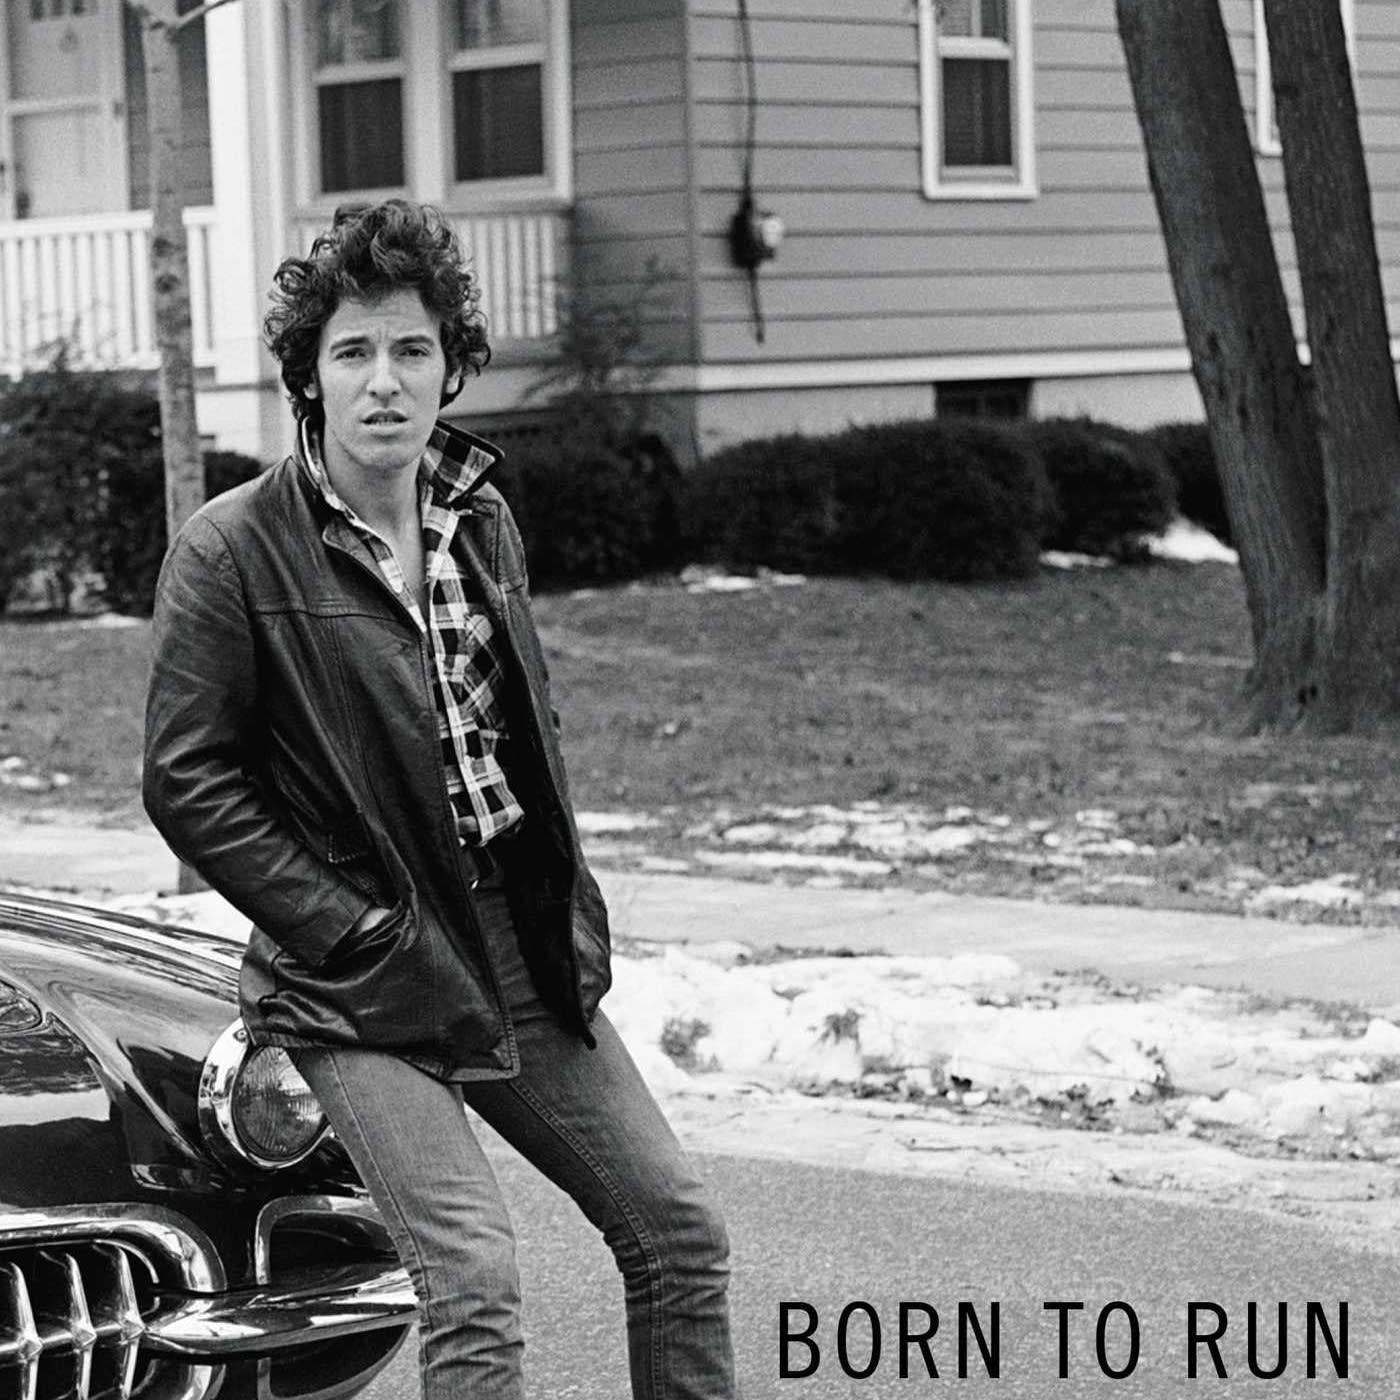 Bruce Springsteen's memoir 'Born to Run'